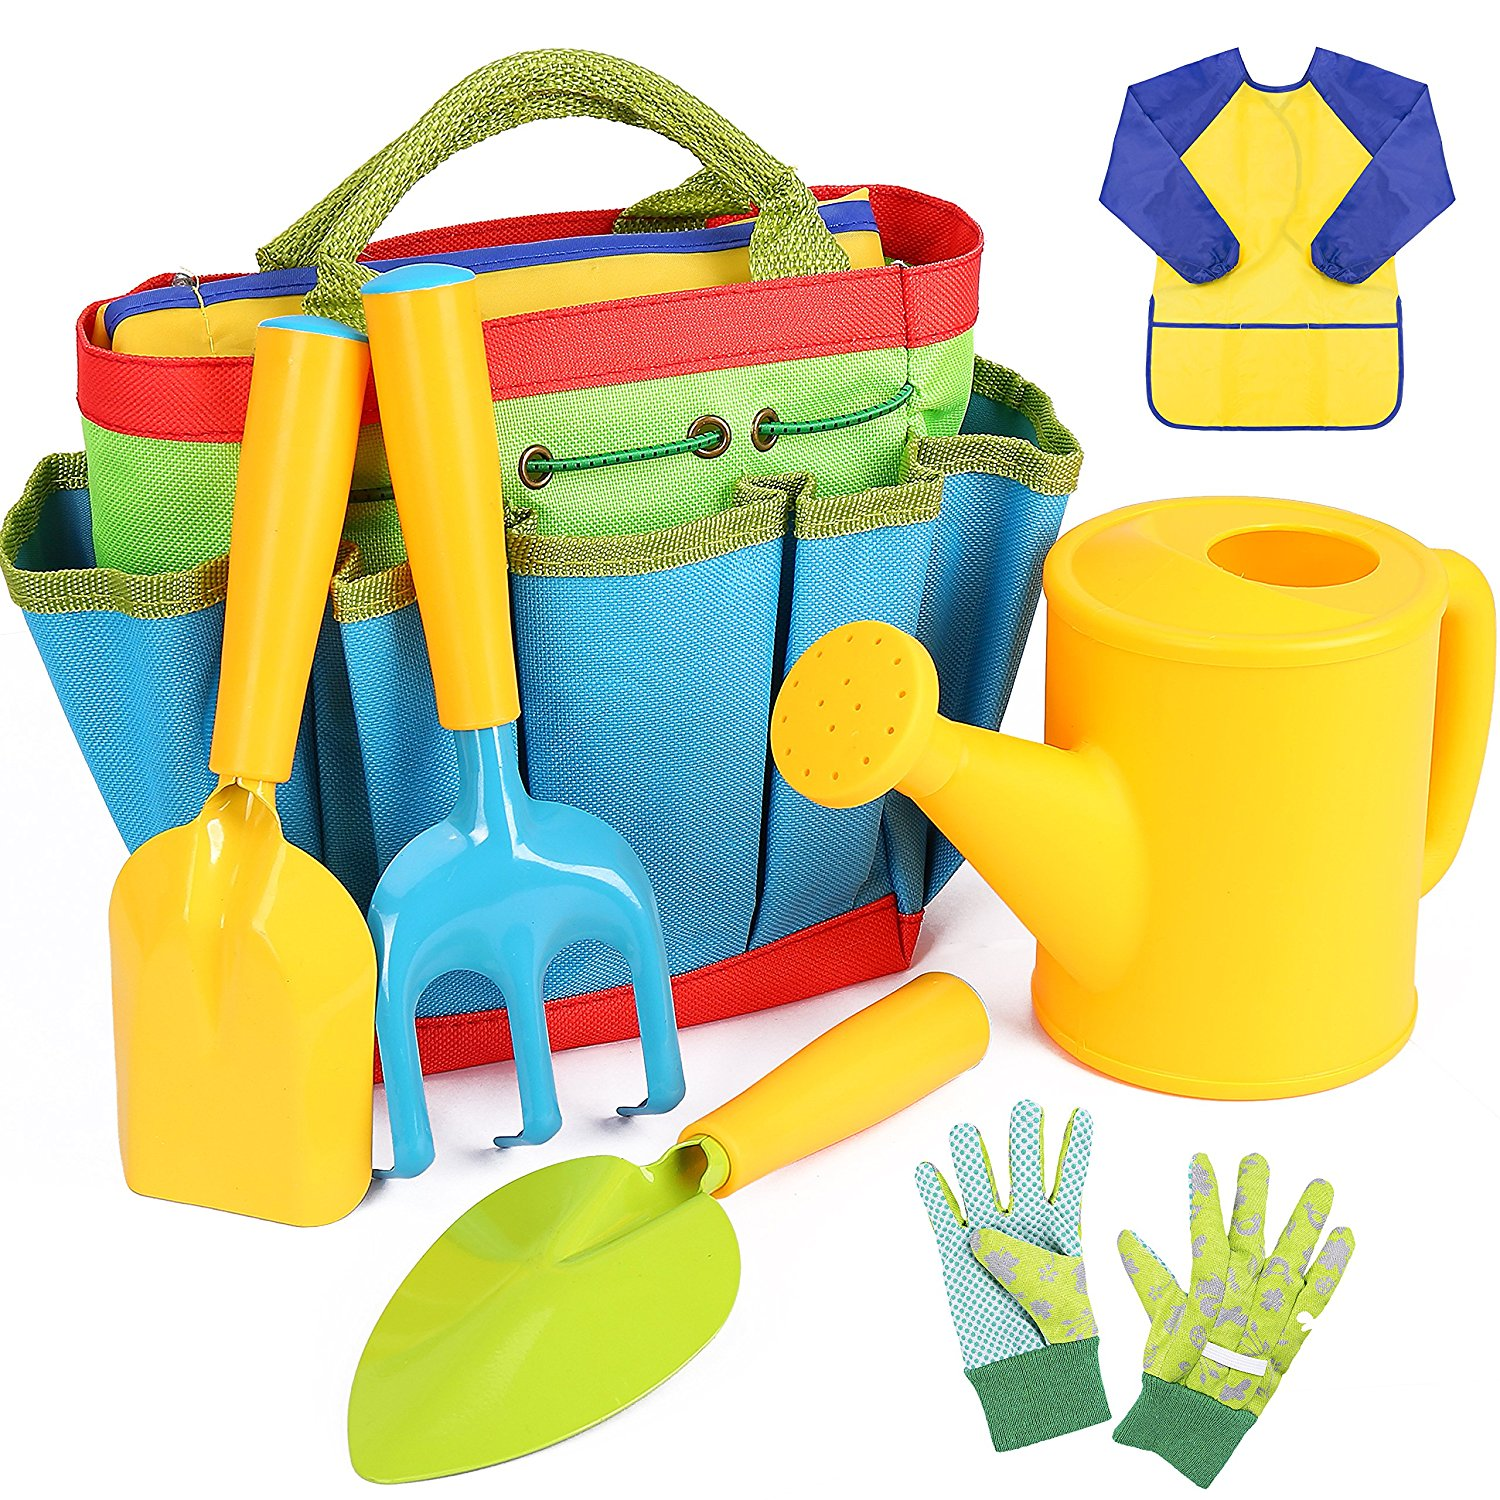 INNOCHEER Kids Gardening Tools, 7 Piece Garden toolset for Kids with Watering Can, Gardening Gloves, Shovel, Rake, Trowel and Kids Smock, All in One Gardening Tote